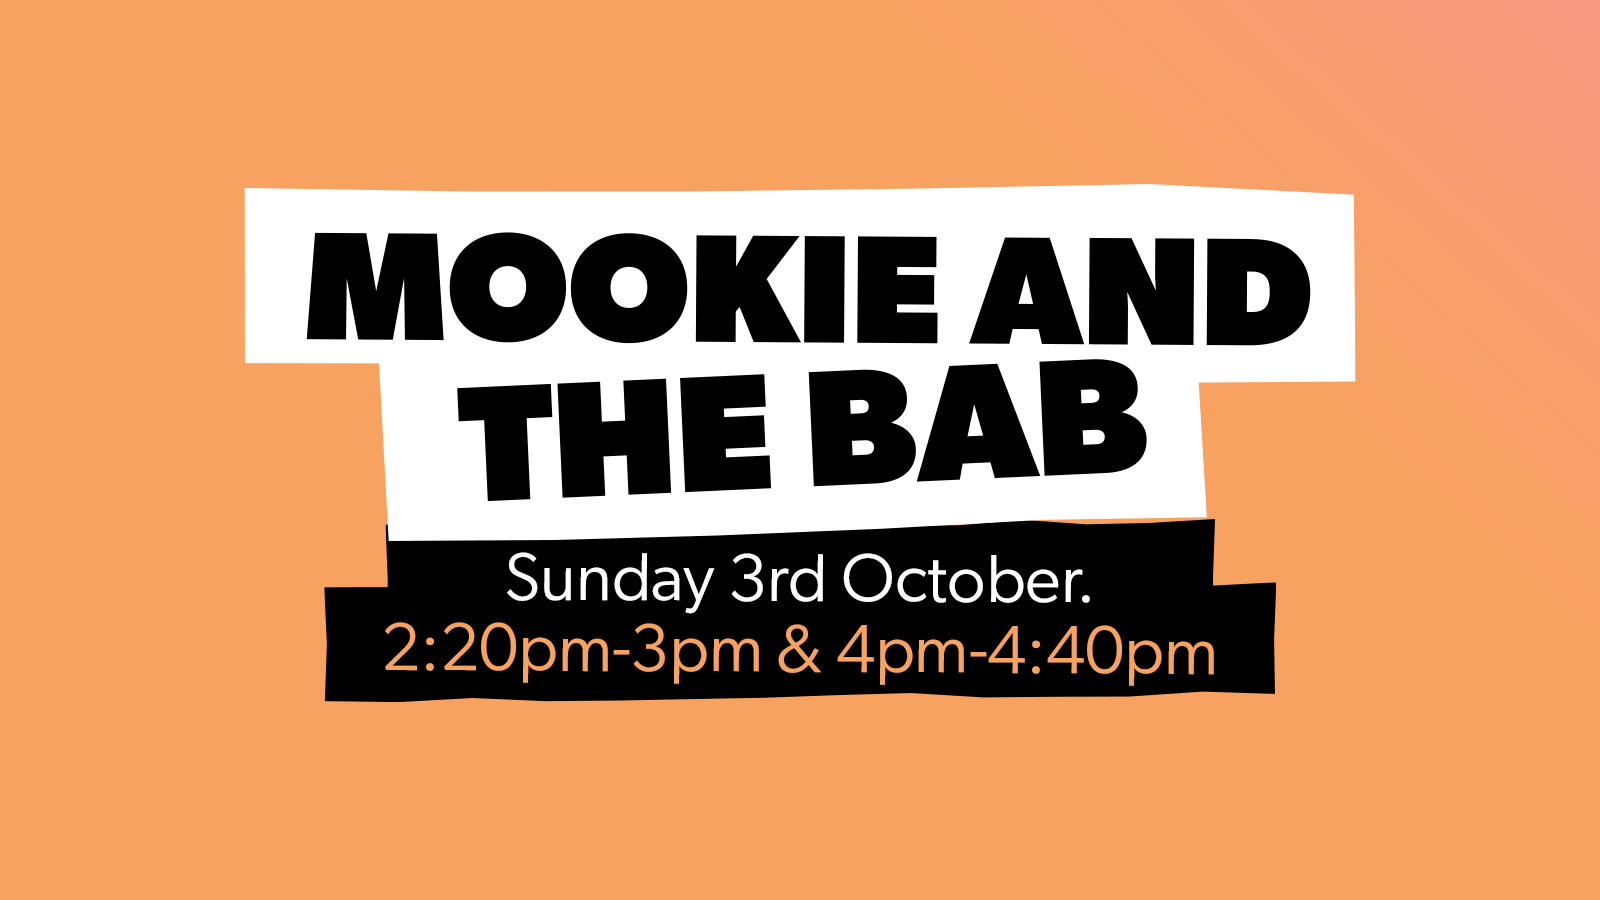 Chow Down: Sunday 3rd October – Mookie & The Bab (Live)